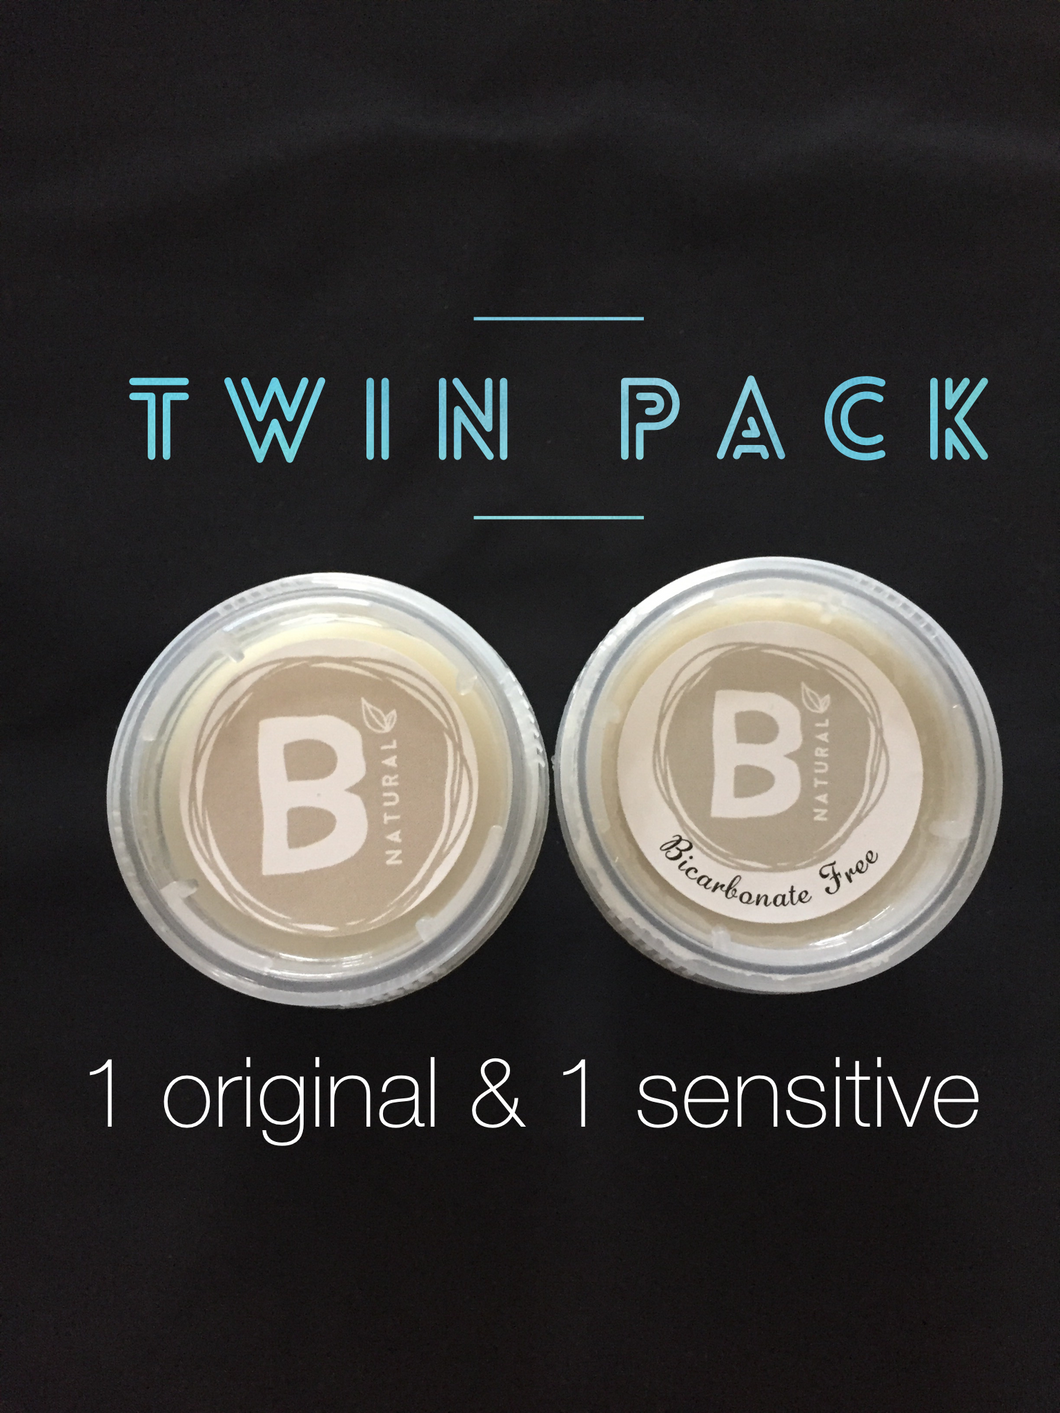 TWIN PACK- ONE ORIGINAL & ONE BICARBONATE FREE DEODORANT